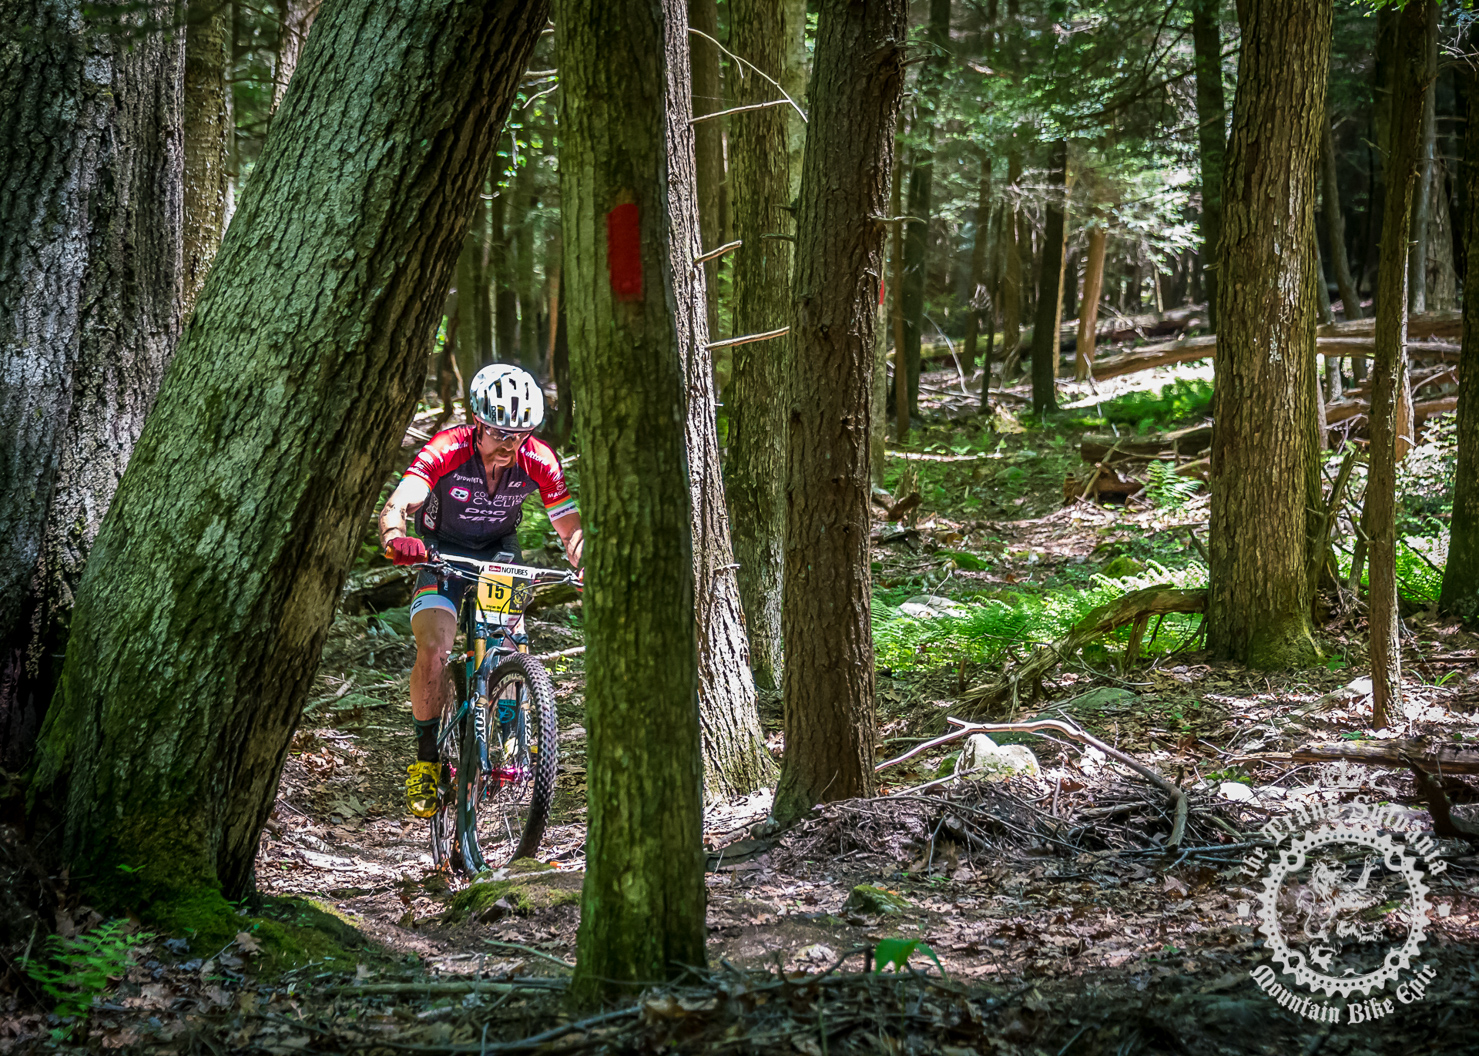 Tristan Uhl (Competitive Cyclist) picks his way through some tight, raw singletrack.